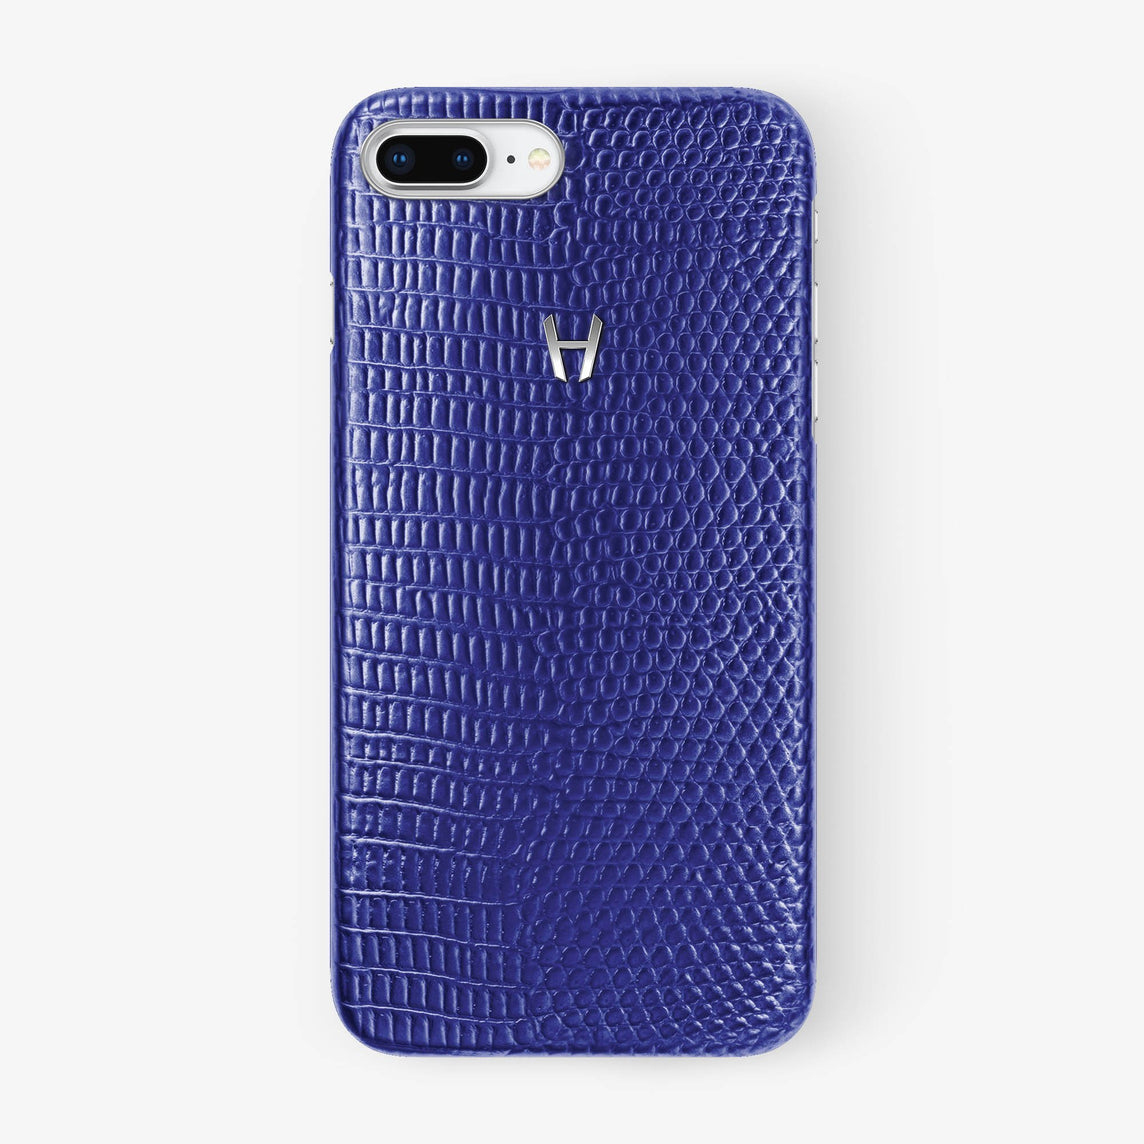 Blue Lizard iPhone Case for iPhone 7/8 Plus finishing stainless steel - Hadoro Luxury Cases